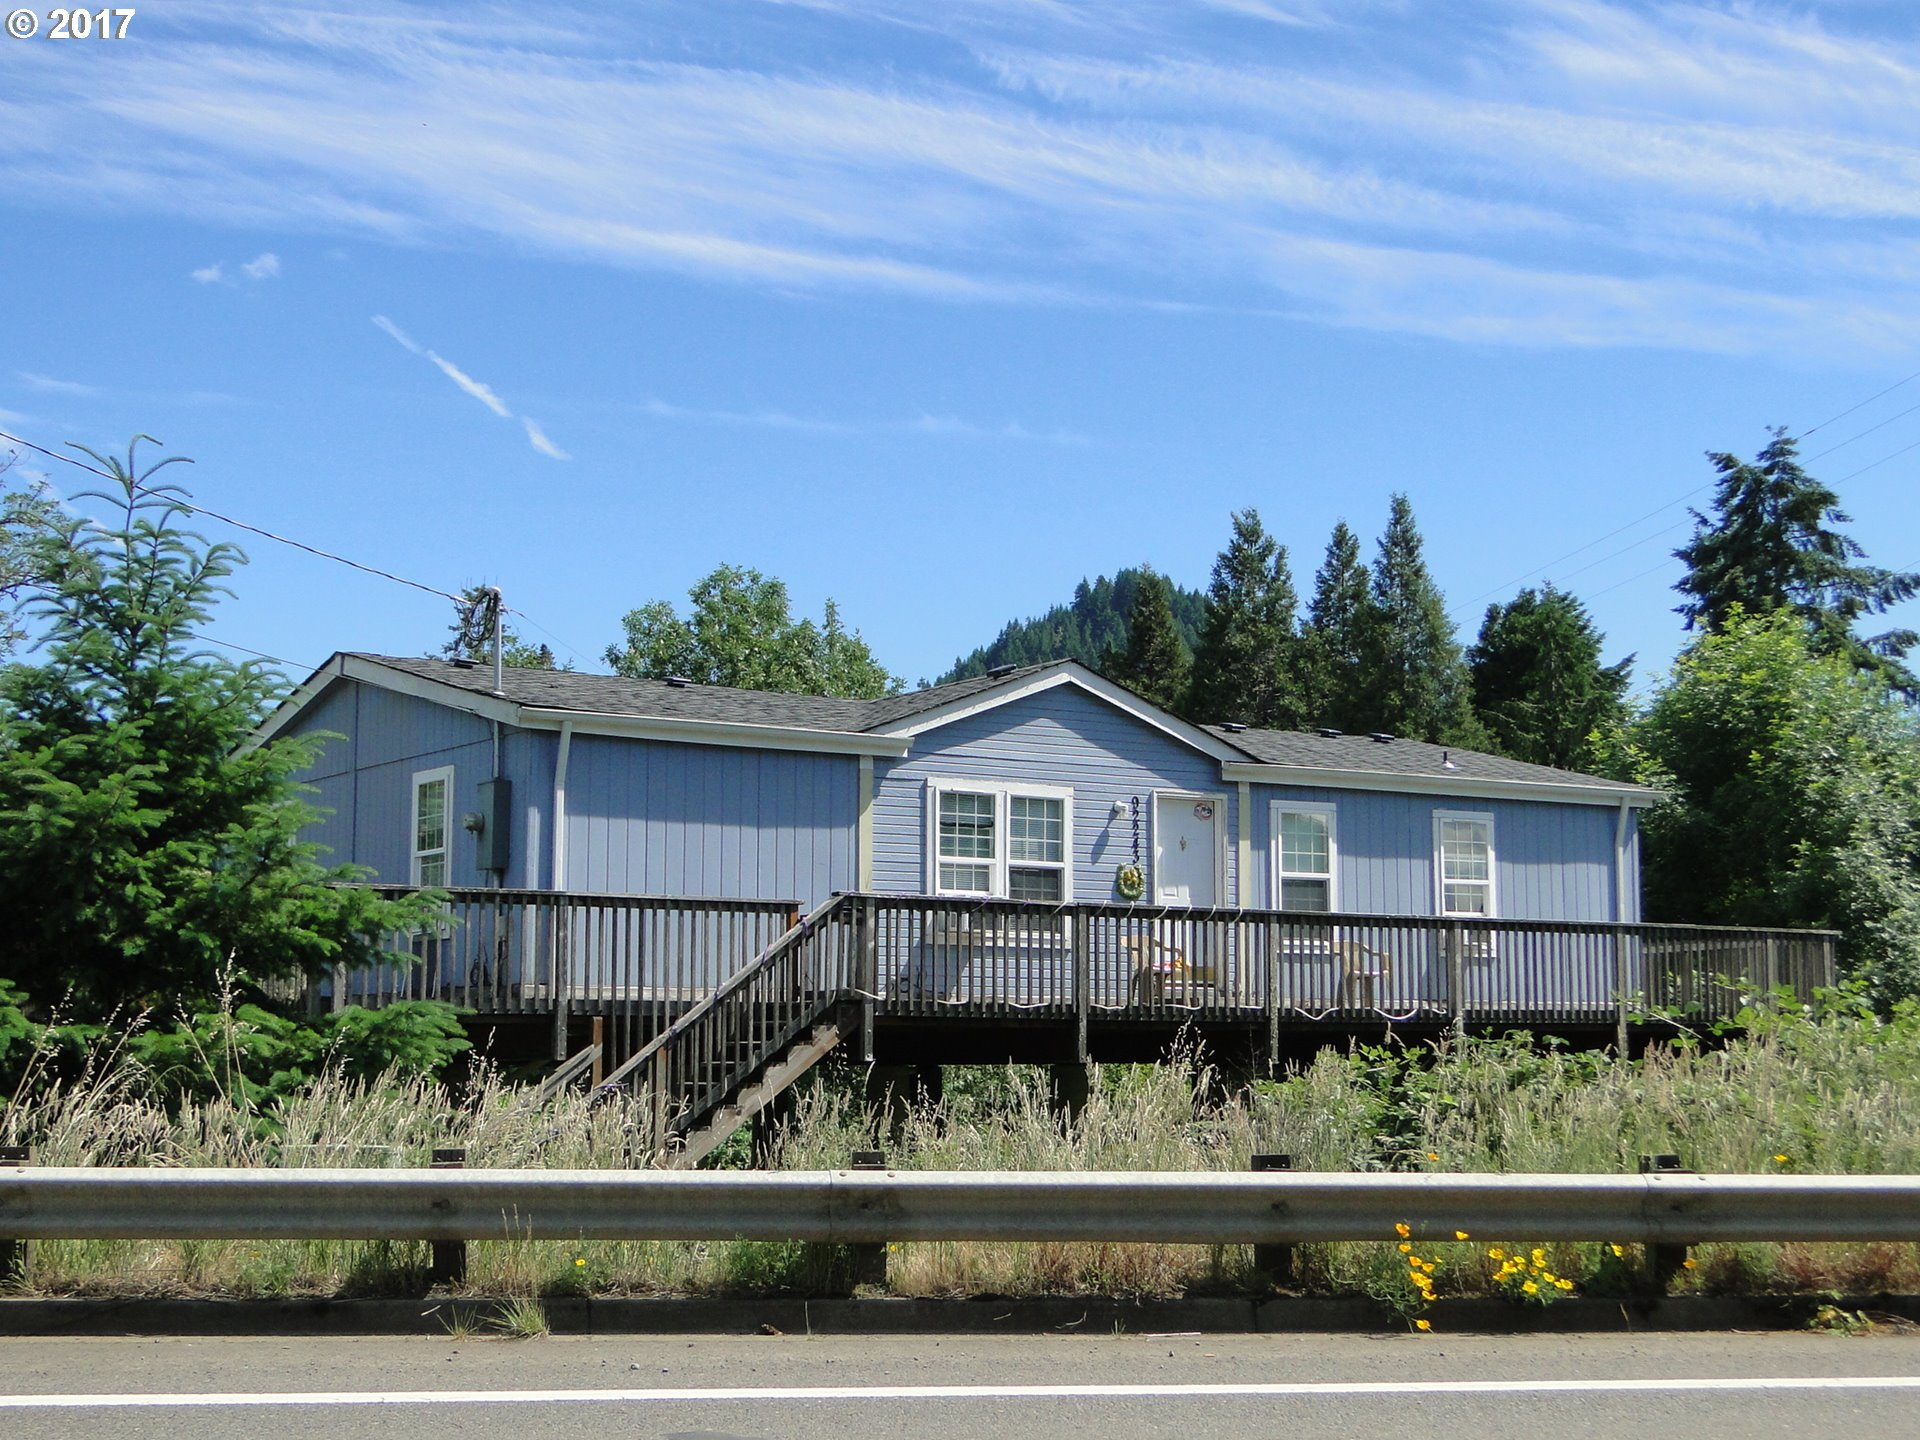 92243 MARCOLA RD, Marcola, OR 97454